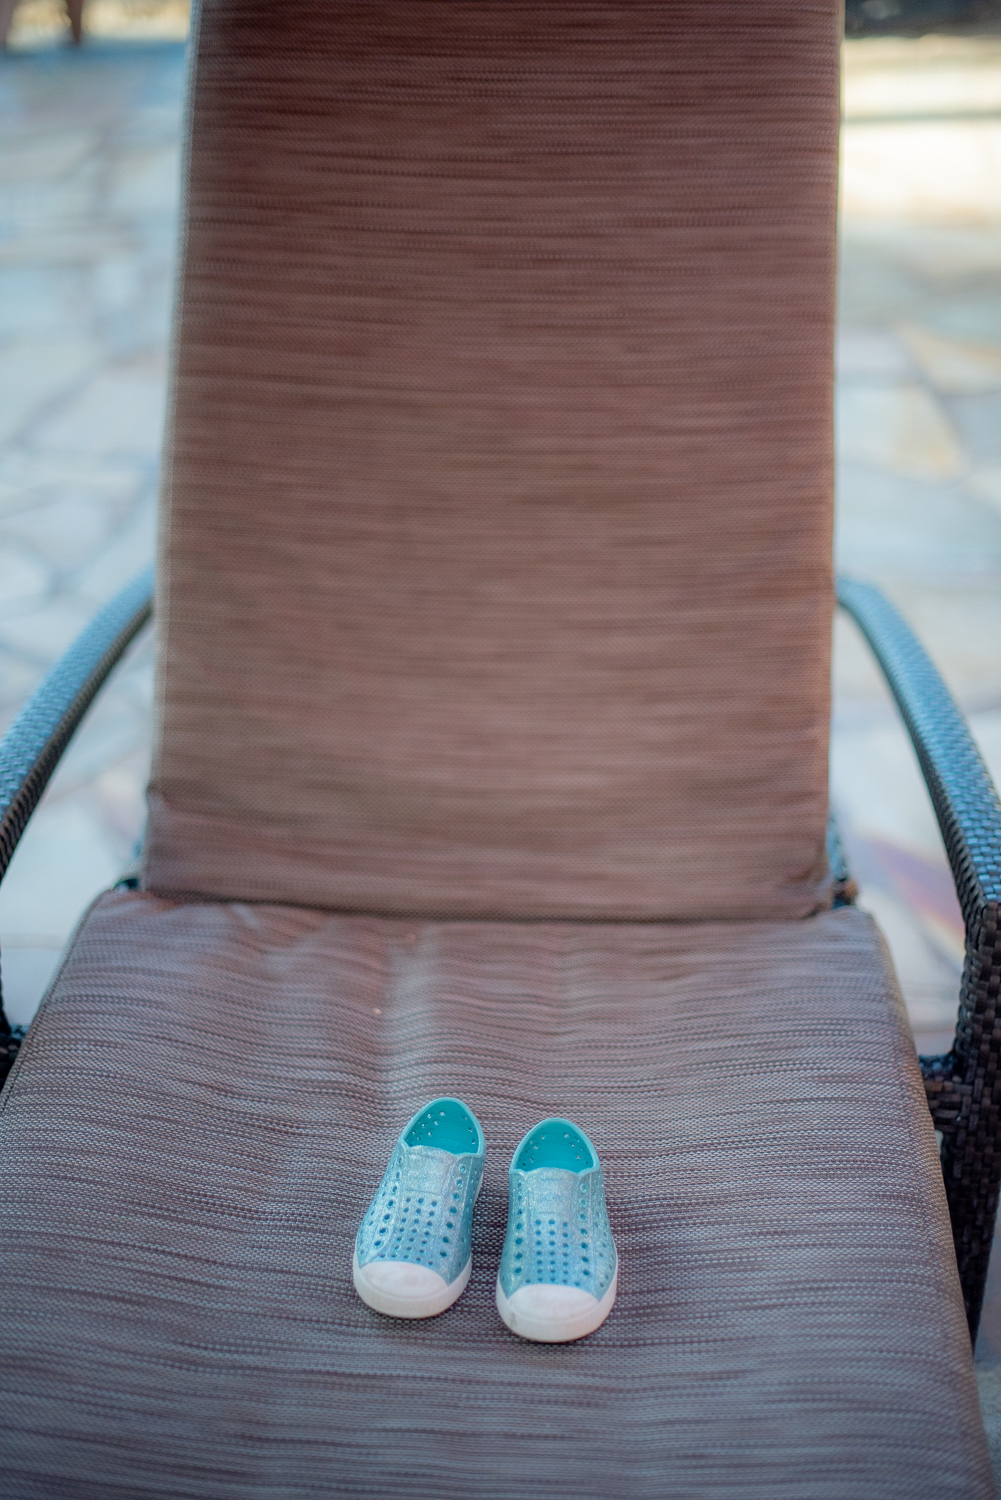 Little blue shoes on chair